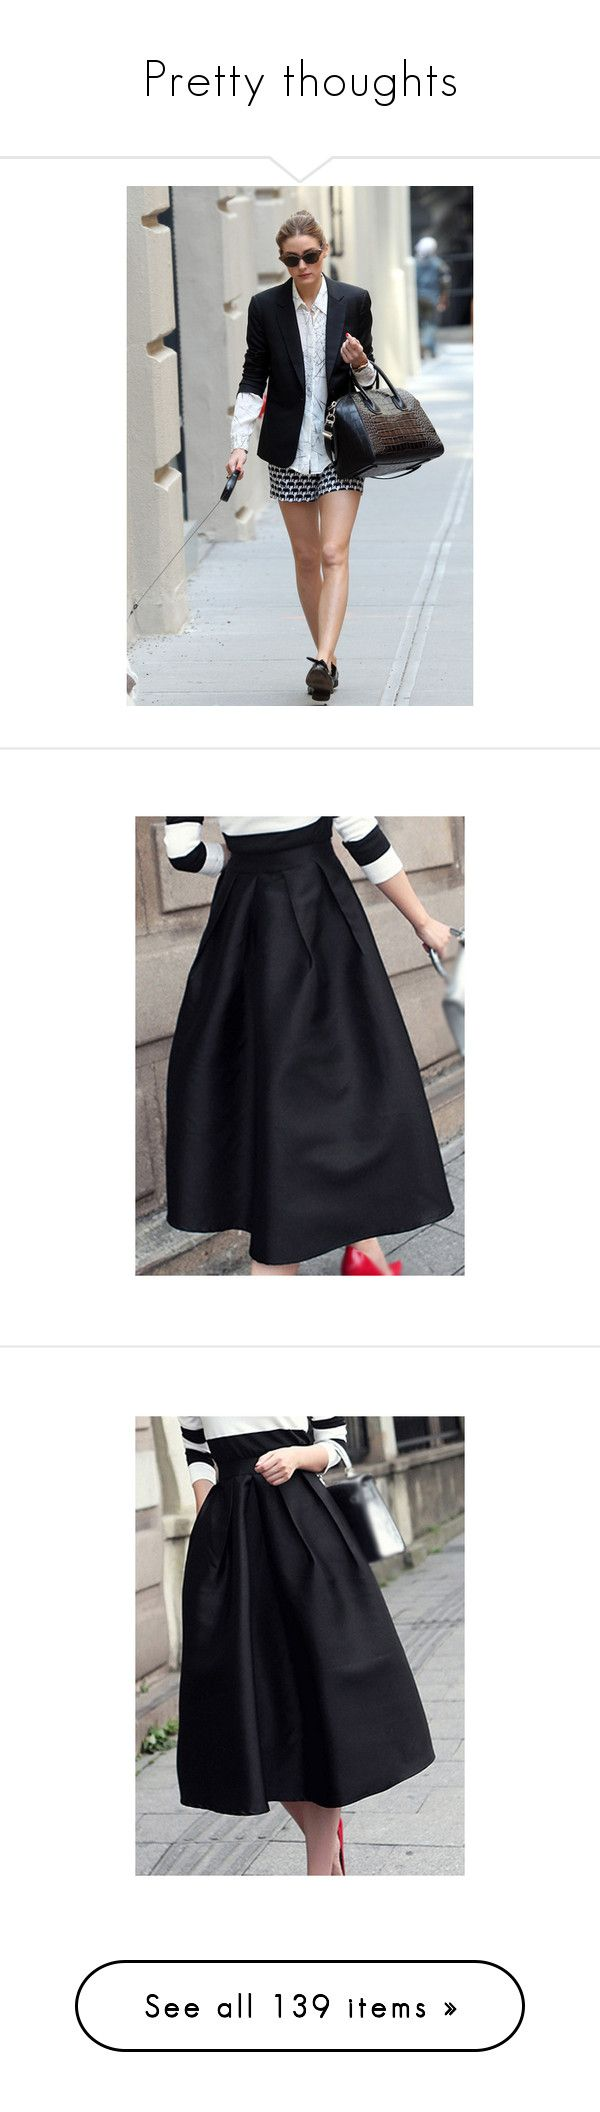 """""""Pretty thoughts"""" by clothesmonkey ❤ liked on Polyvore featuring skirts, high waisted midi skirt, midi circle skirt, circle skirts, high-waisted skirts, high waist skirt, black, knee length a line skirt, high-waist skirt and midi skirt"""